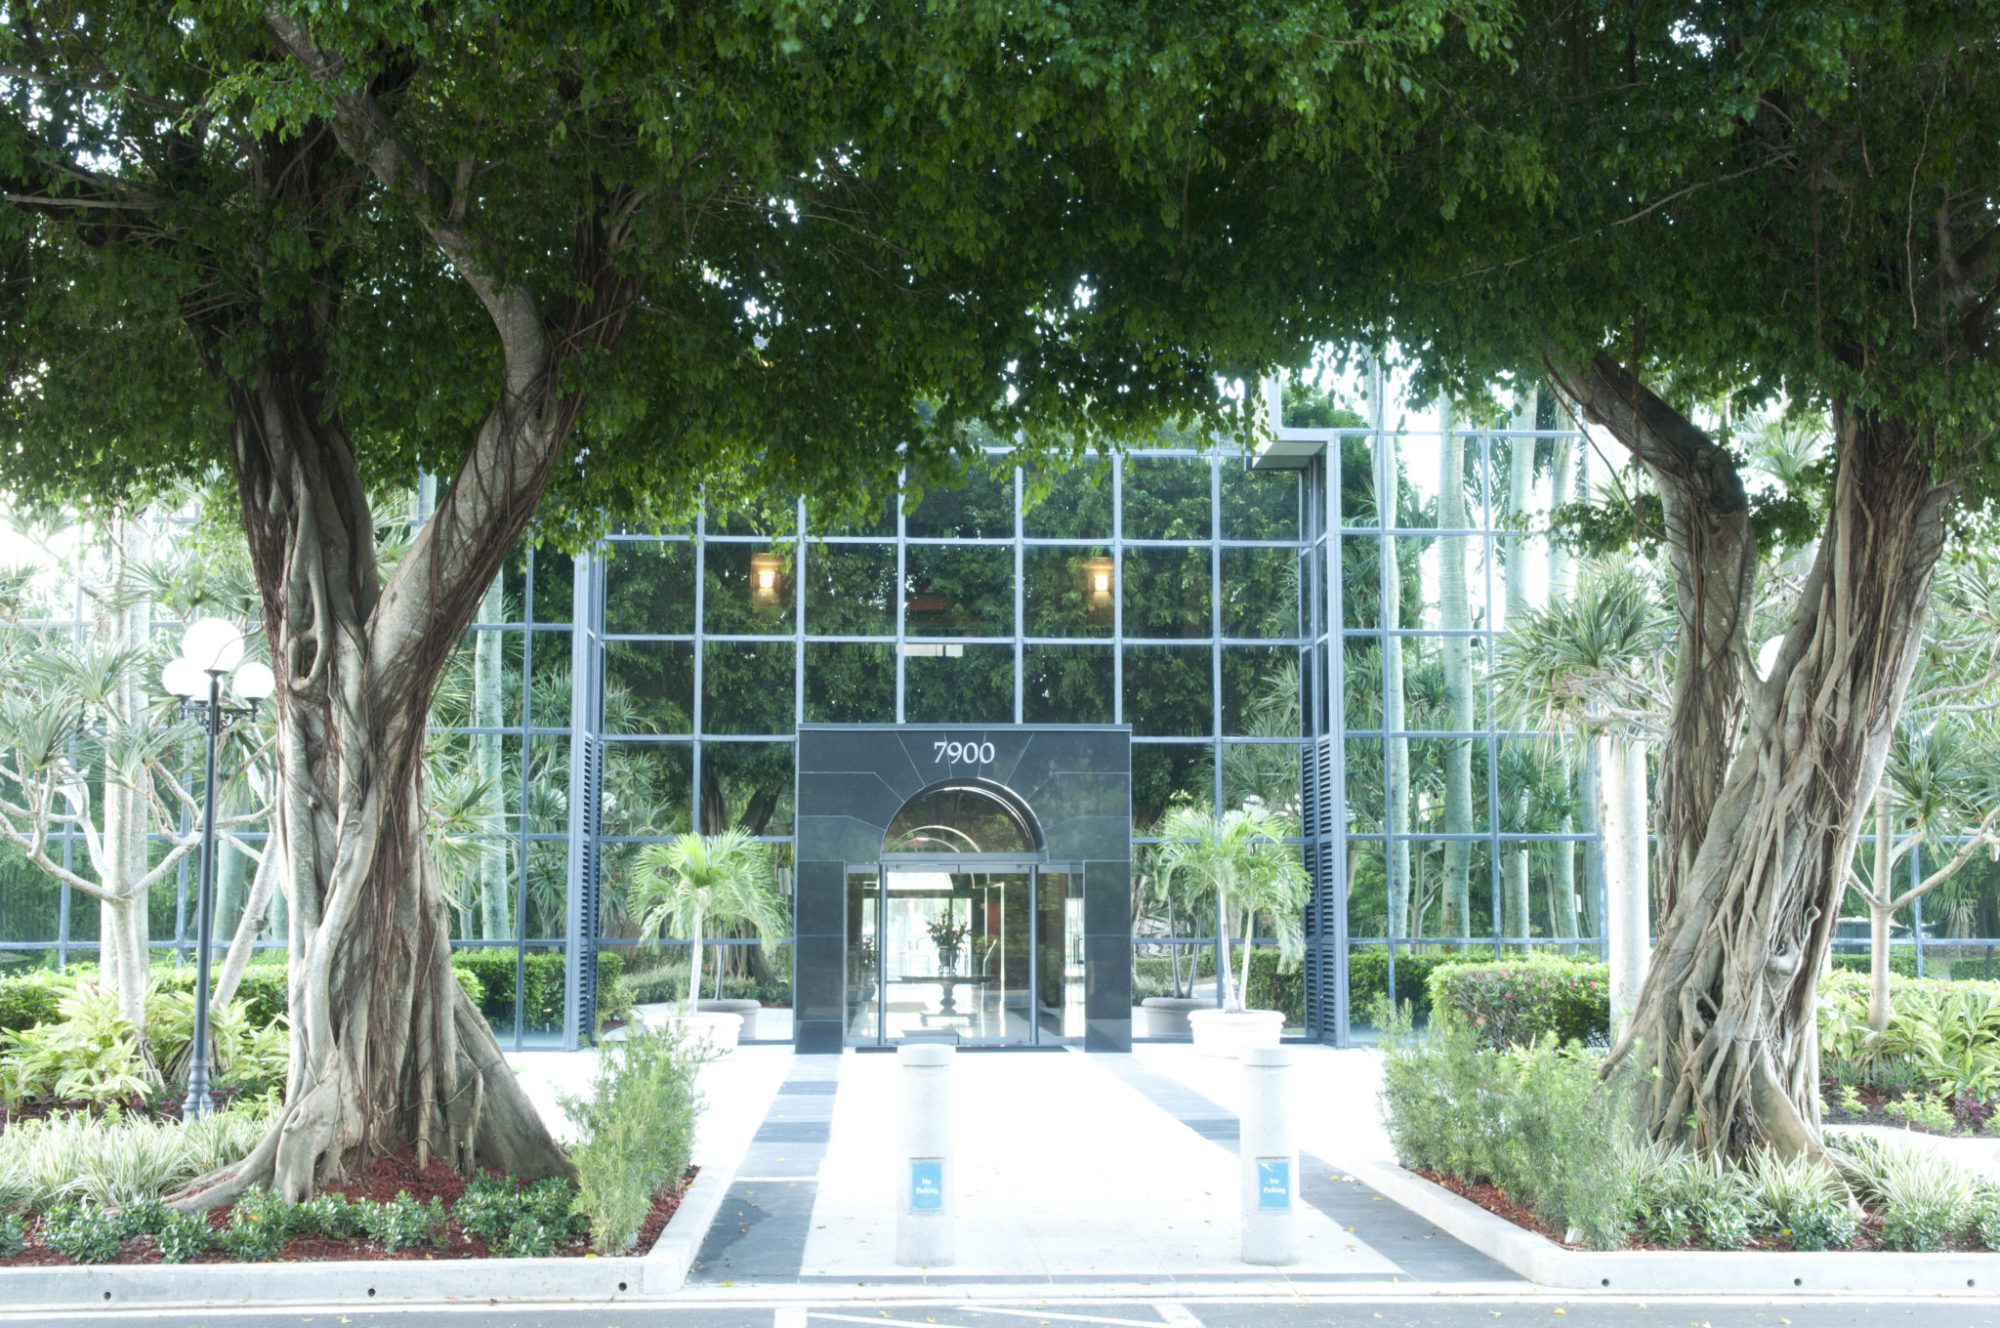 PEBB Enterprises - Boca Corporate Office, Boca Raton, Florida 1